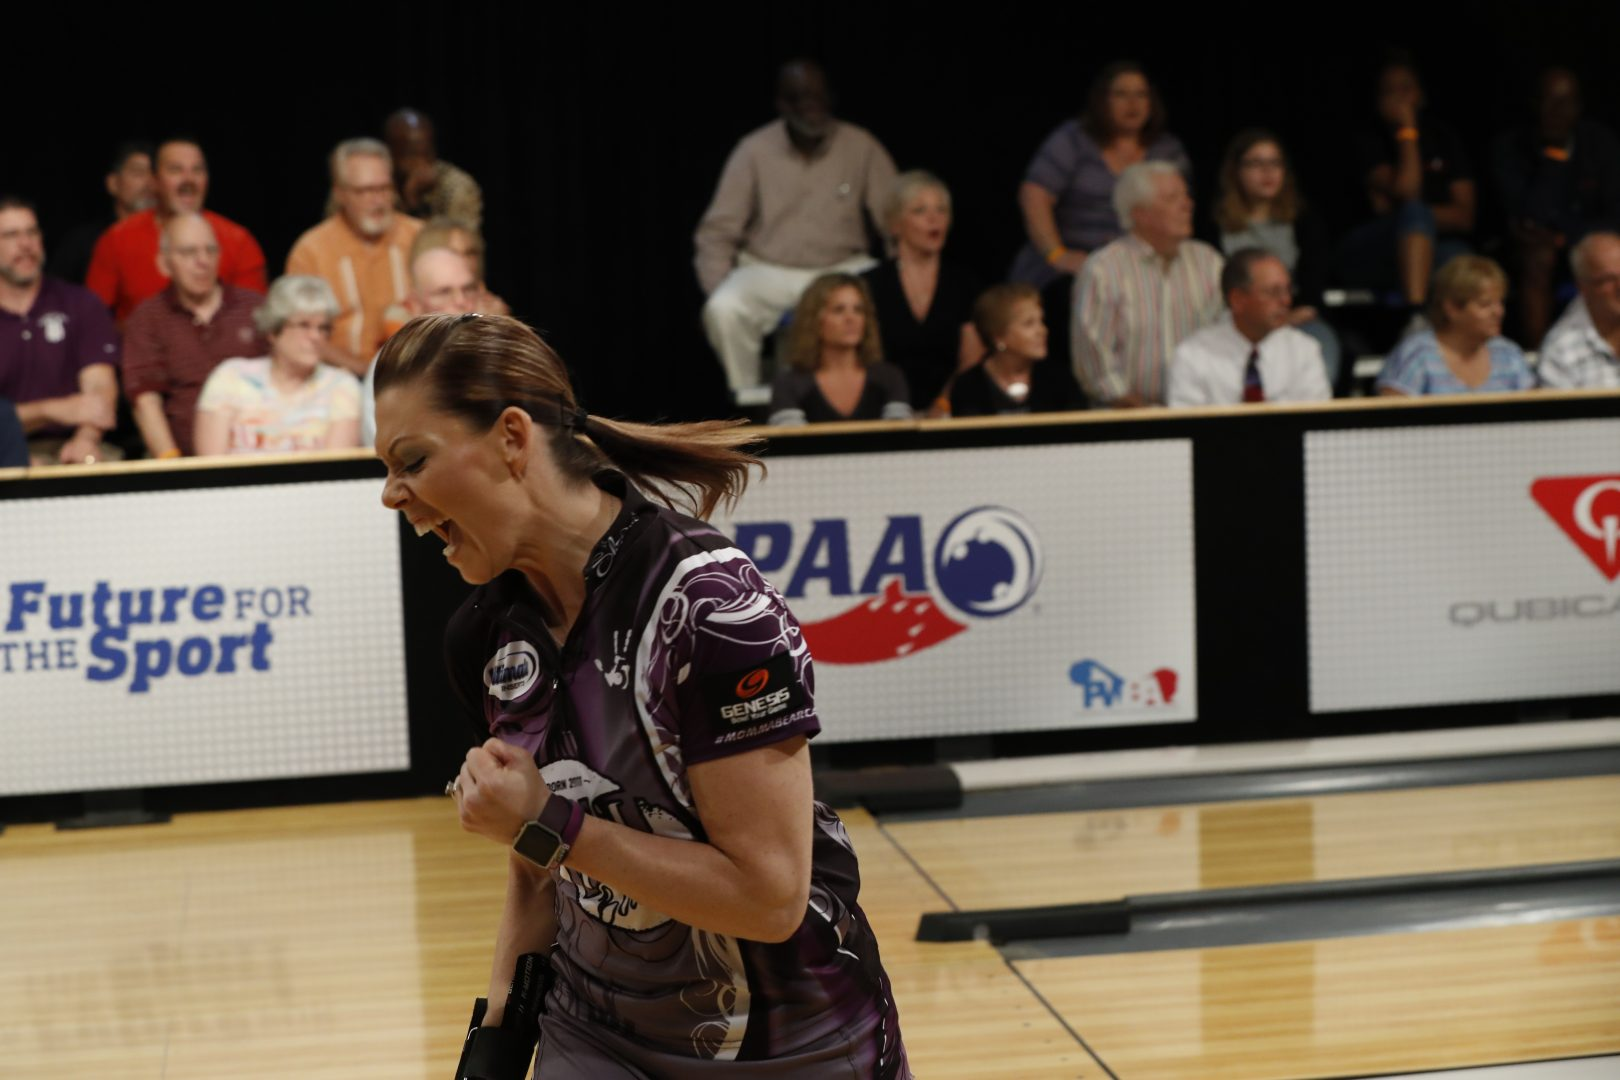 06 August 2017 - PWBA St. Petersburg - Clearwater Open at the Plano Super Bowl, Plano, Texas.  ©ELLMAN PHOTOGRAPHY